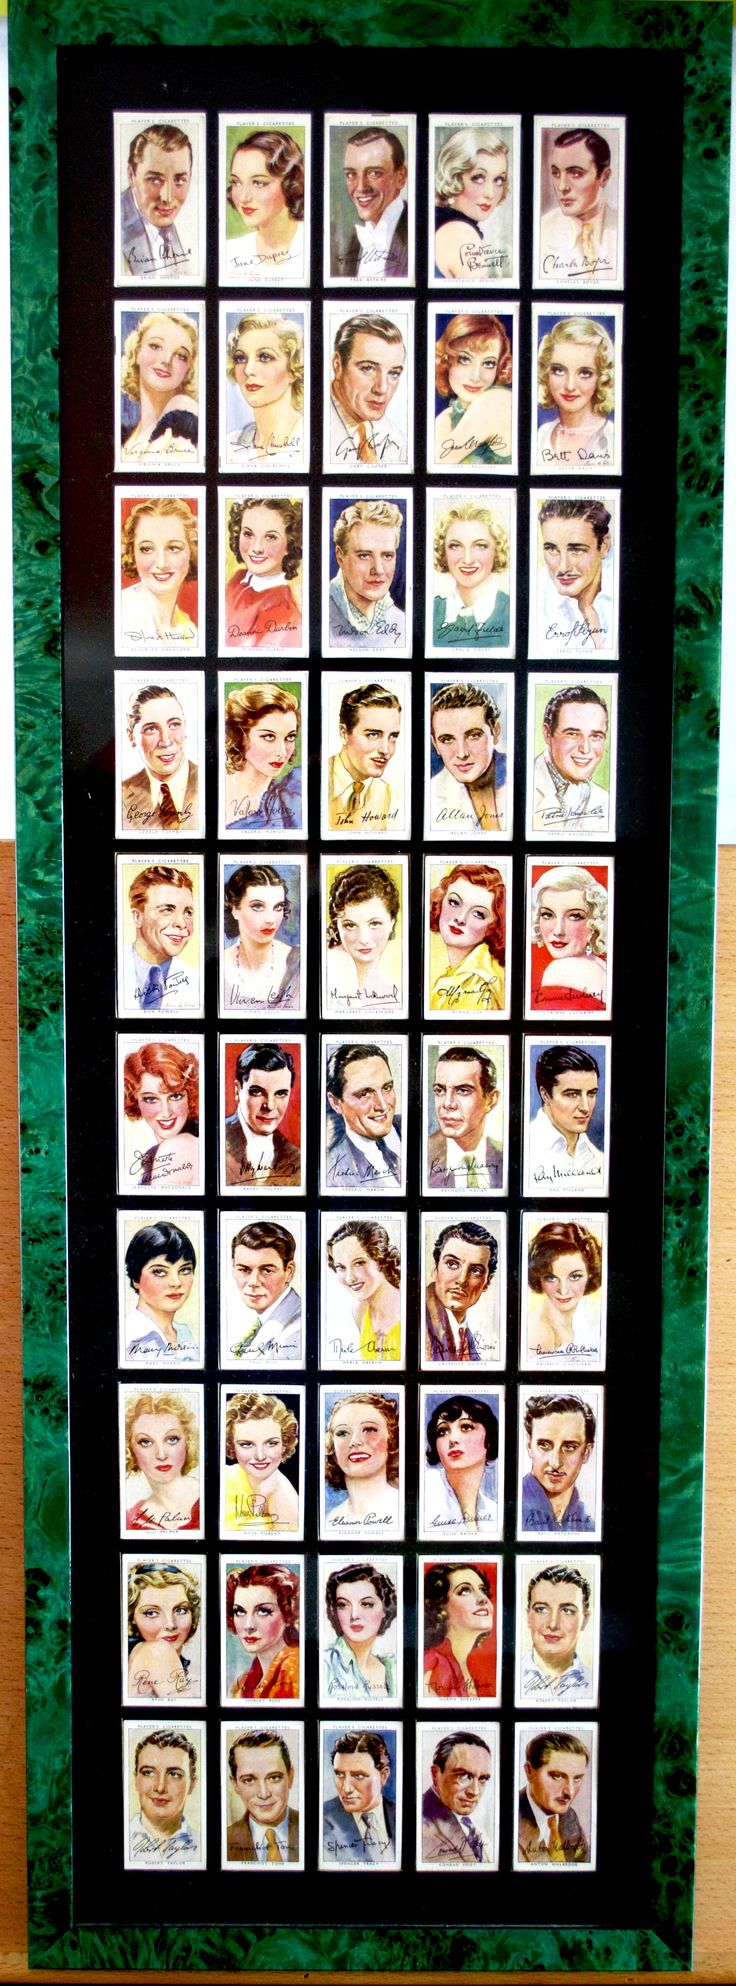 Complete framed set of 50 Players 'Film Stars' cigarette cards series three from 1938